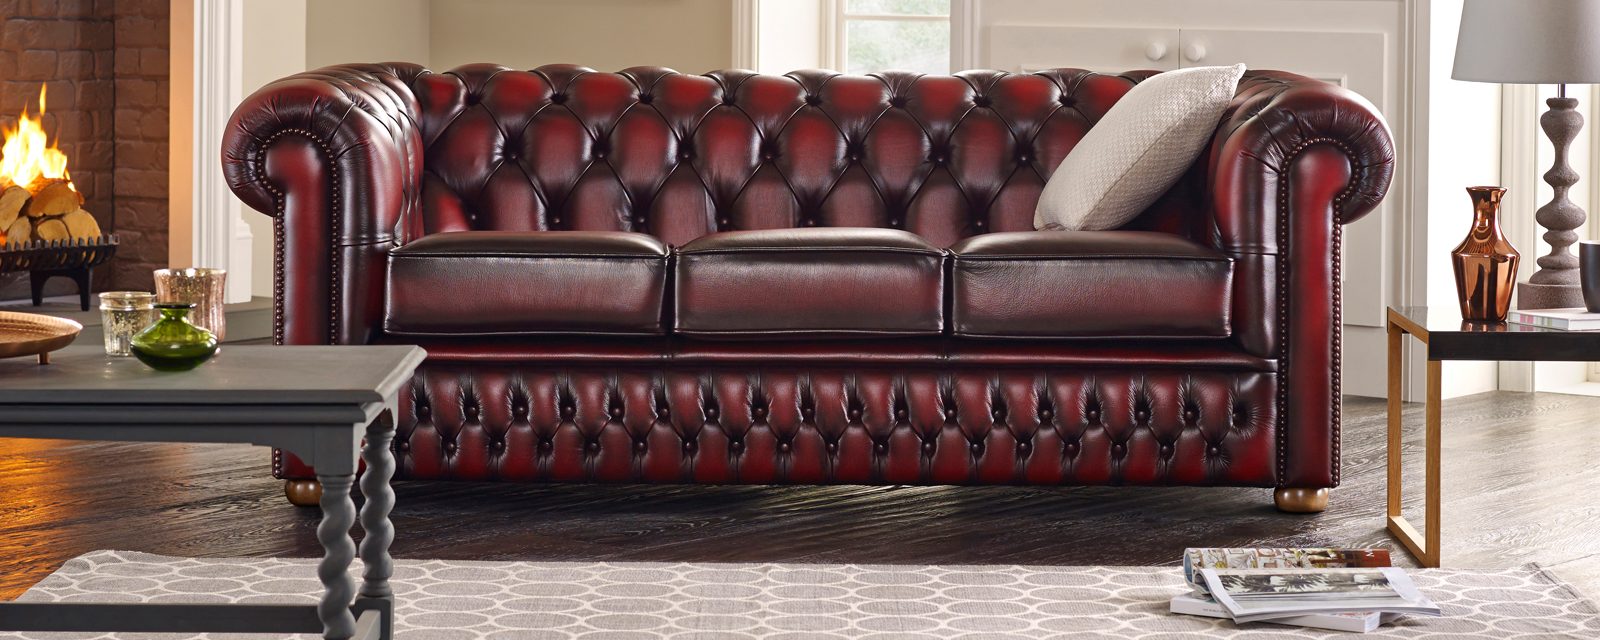 Made Sofa Shop 5 Things To Know Before Buying Your Leather Sofa Sofas By